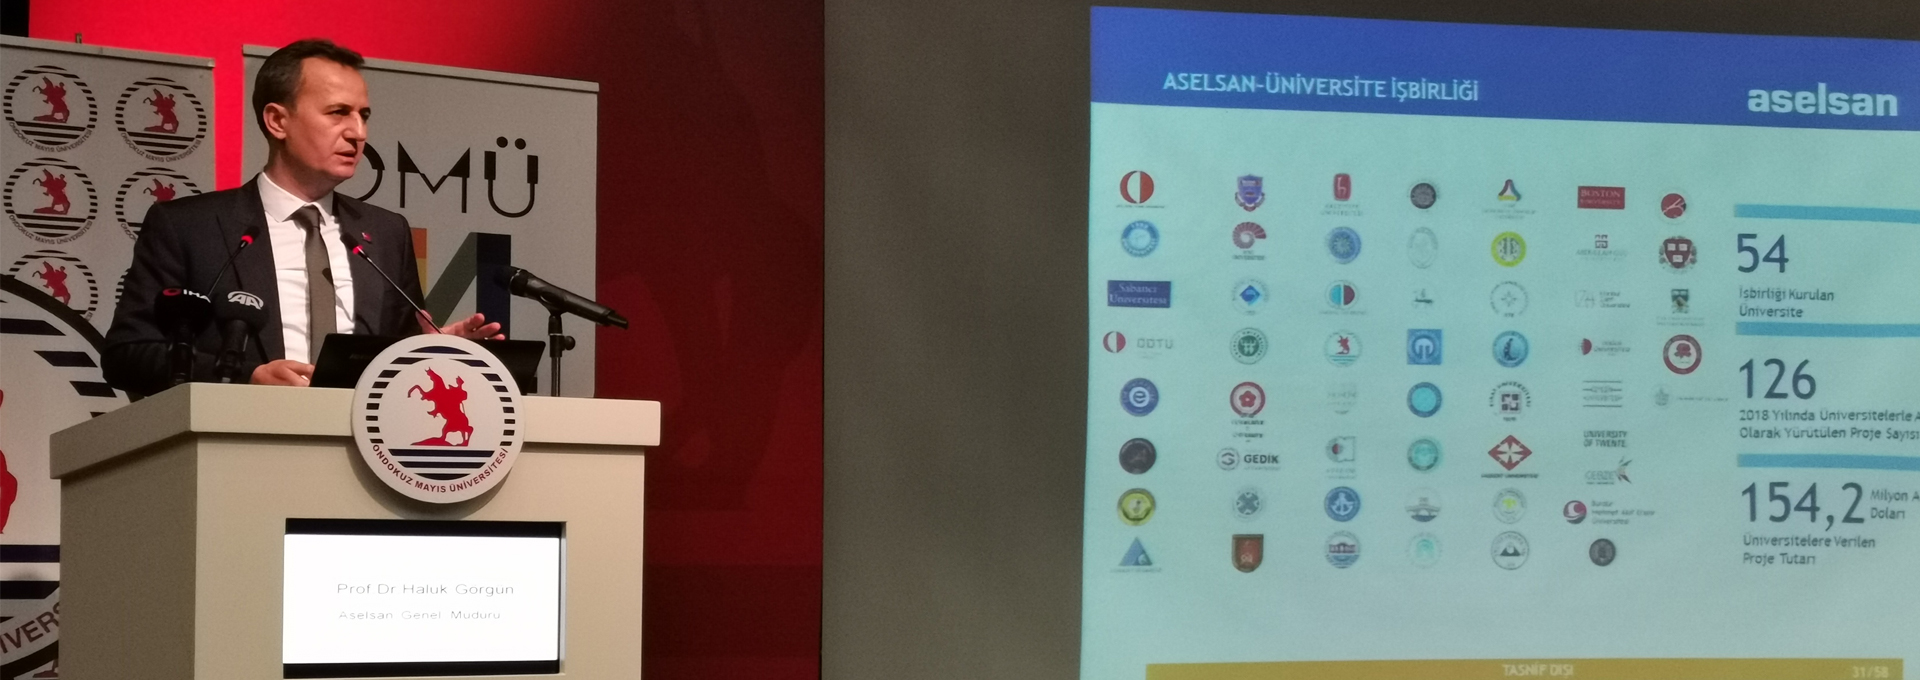 General Director of ASELSAN Gives Information about Domestic and National Activities of the Institution